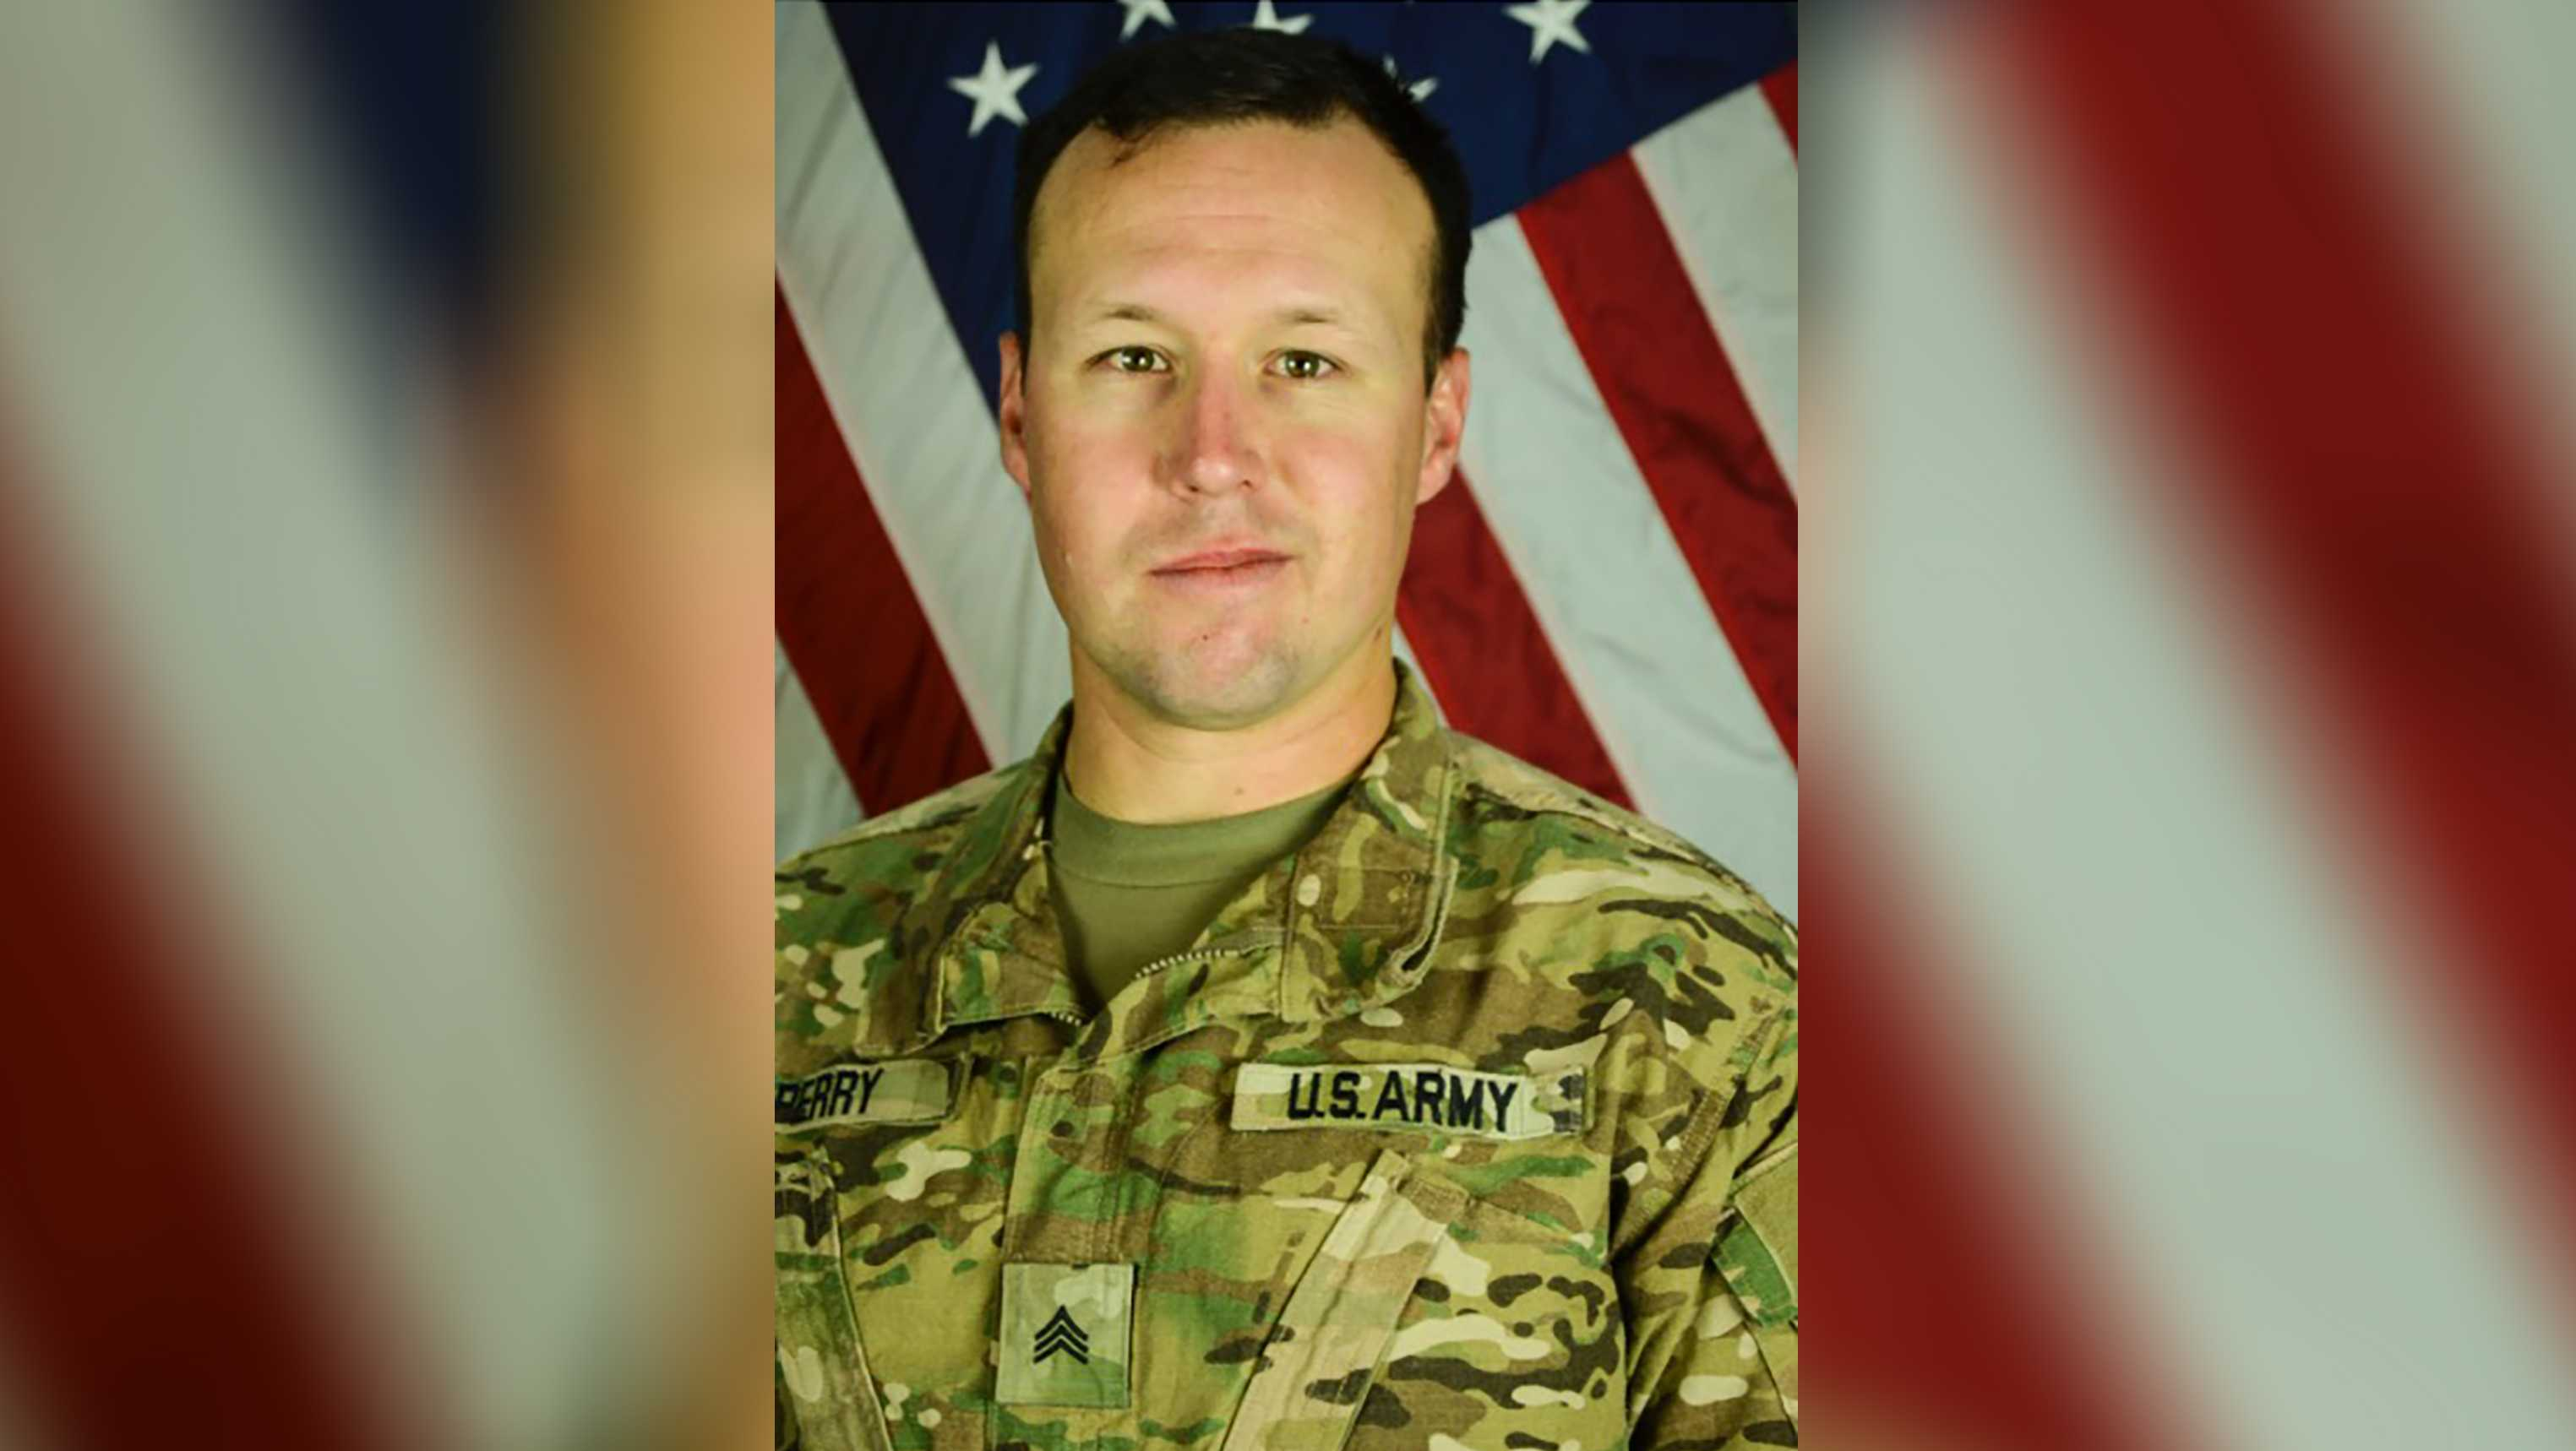 Sgt. John W. Perry, 30, of Stockton